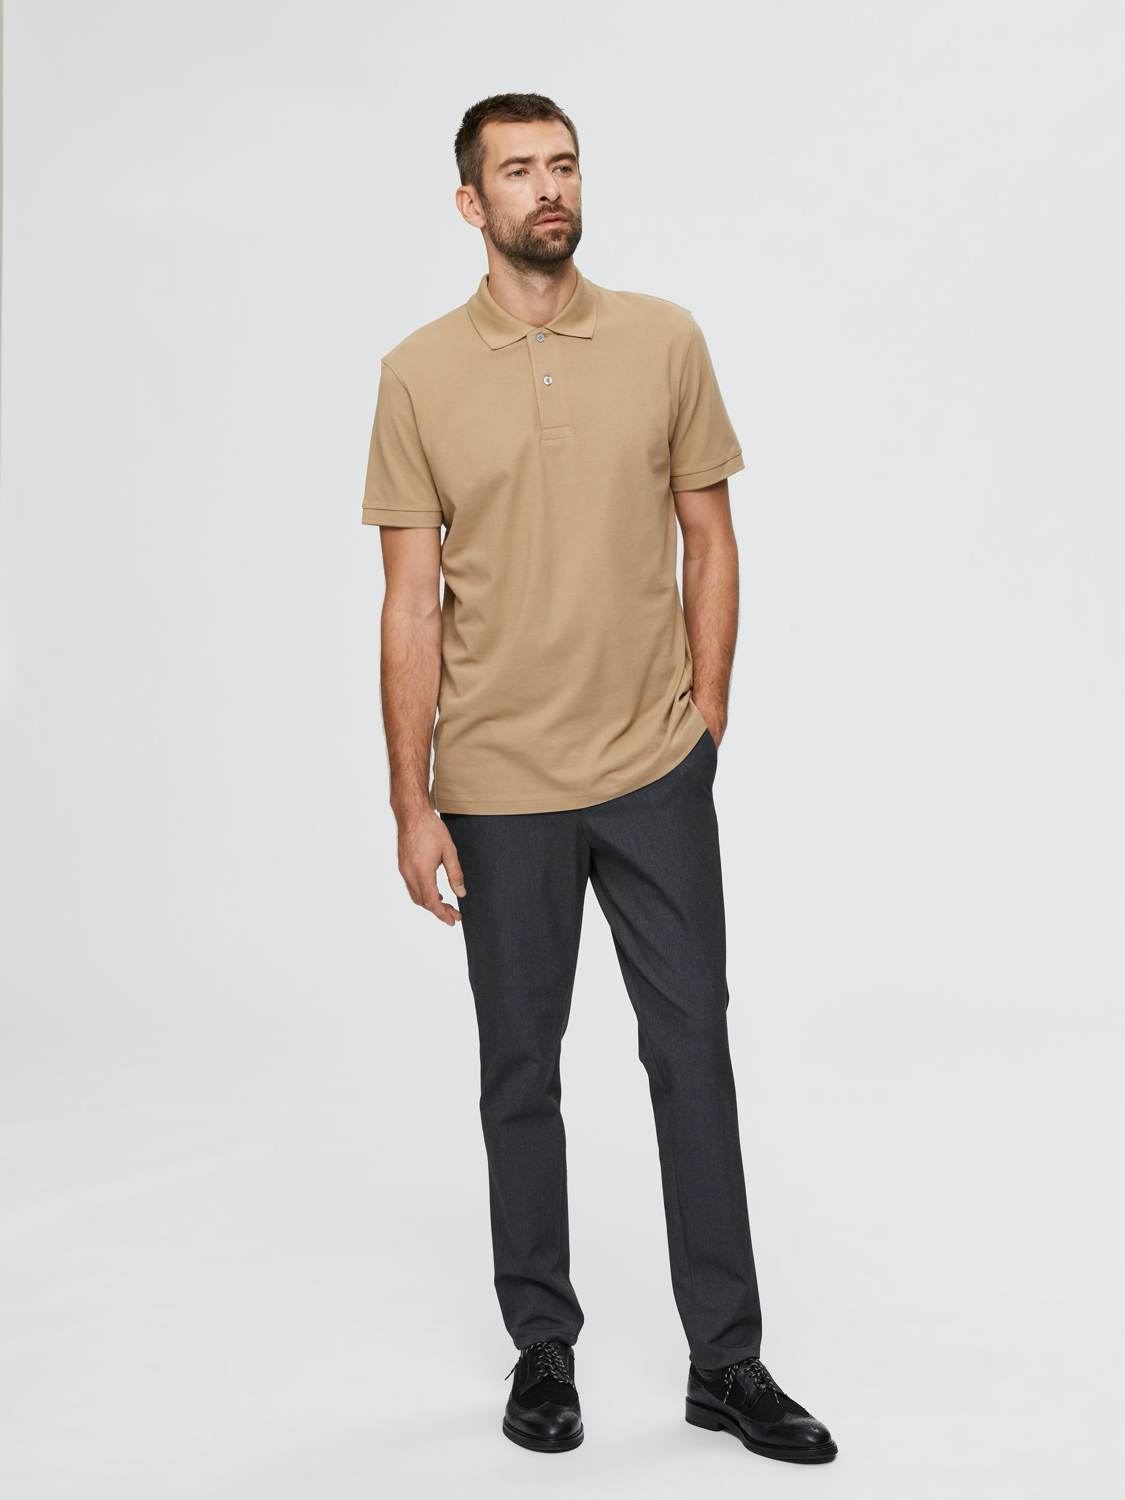 SELECTED POLO T-SHIRT SLHNEO KELP | GATE 36 Hobro